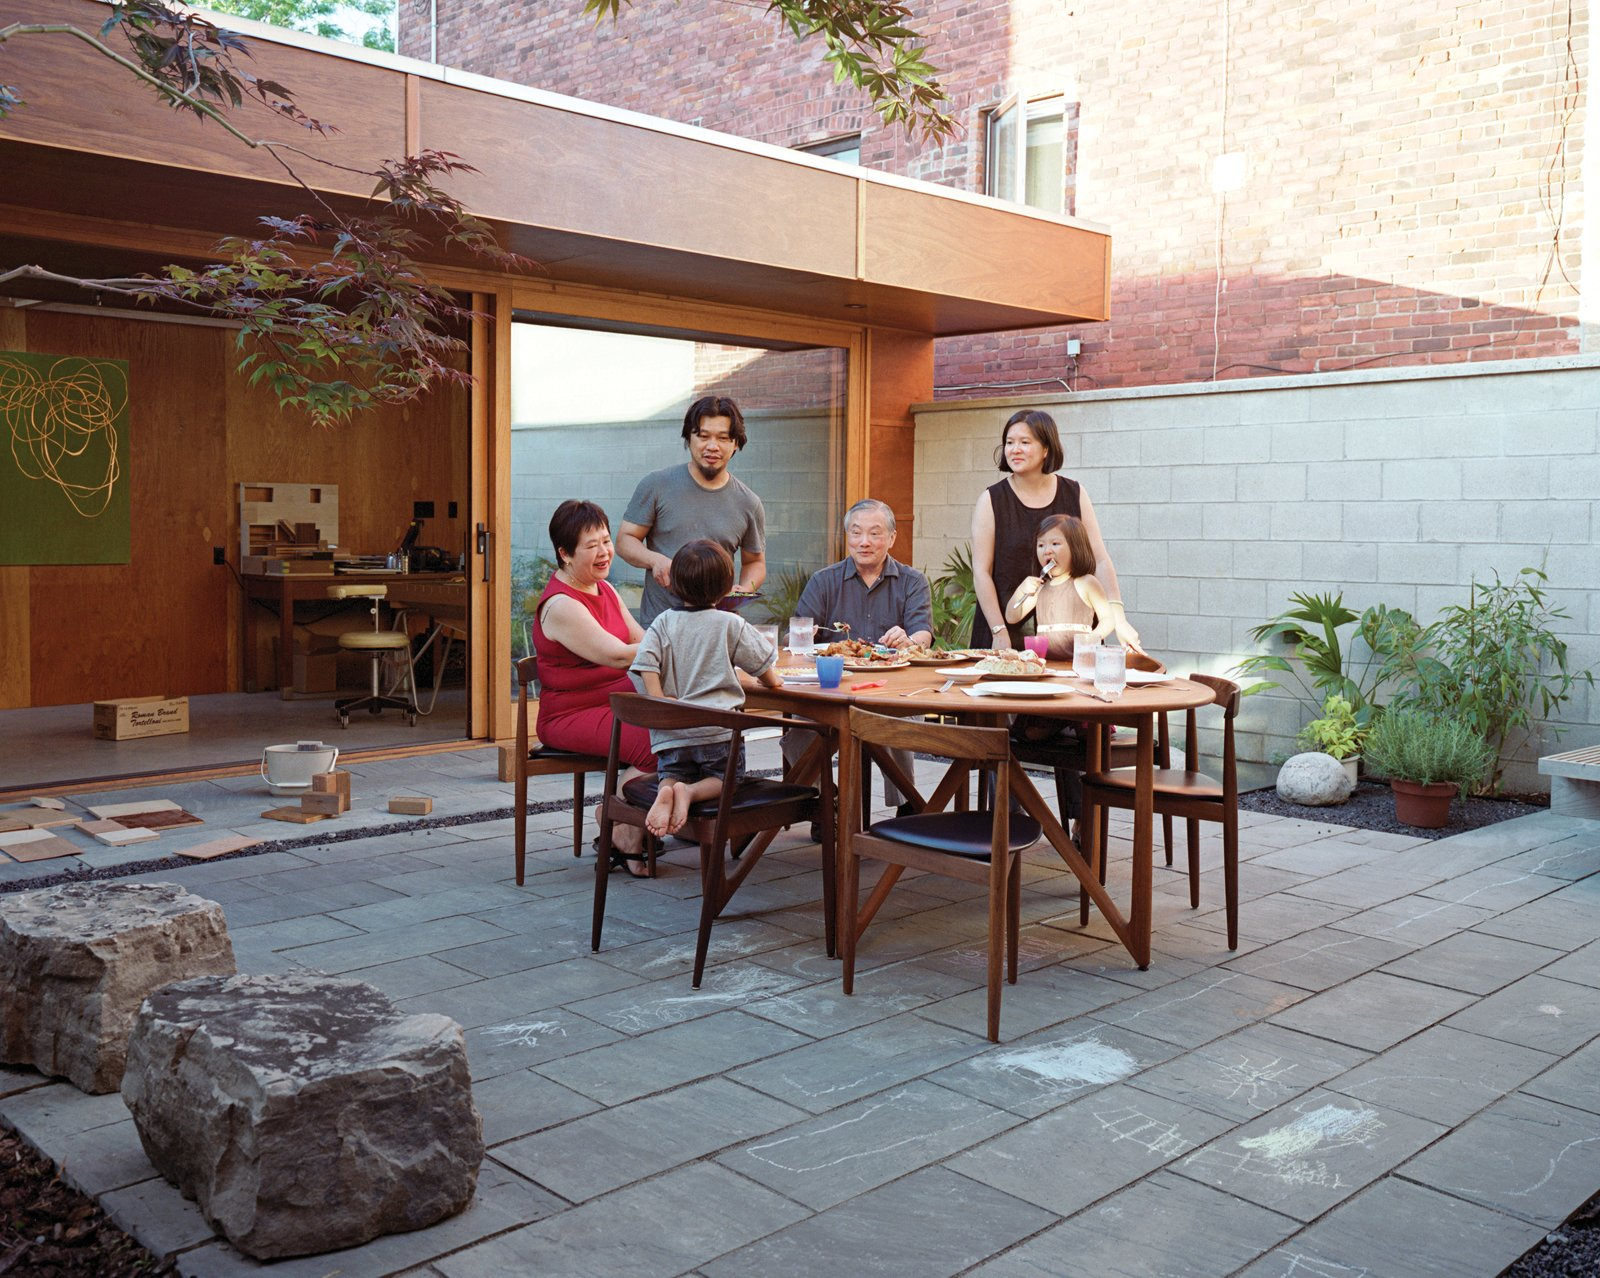 The courtyard in this Toronto home is where the family can catch some sun during the warm summer months, while still maintaning their privacy.  Photo 7 of 10 in 10 Homes With Large, Well-Ventilated Courtyards